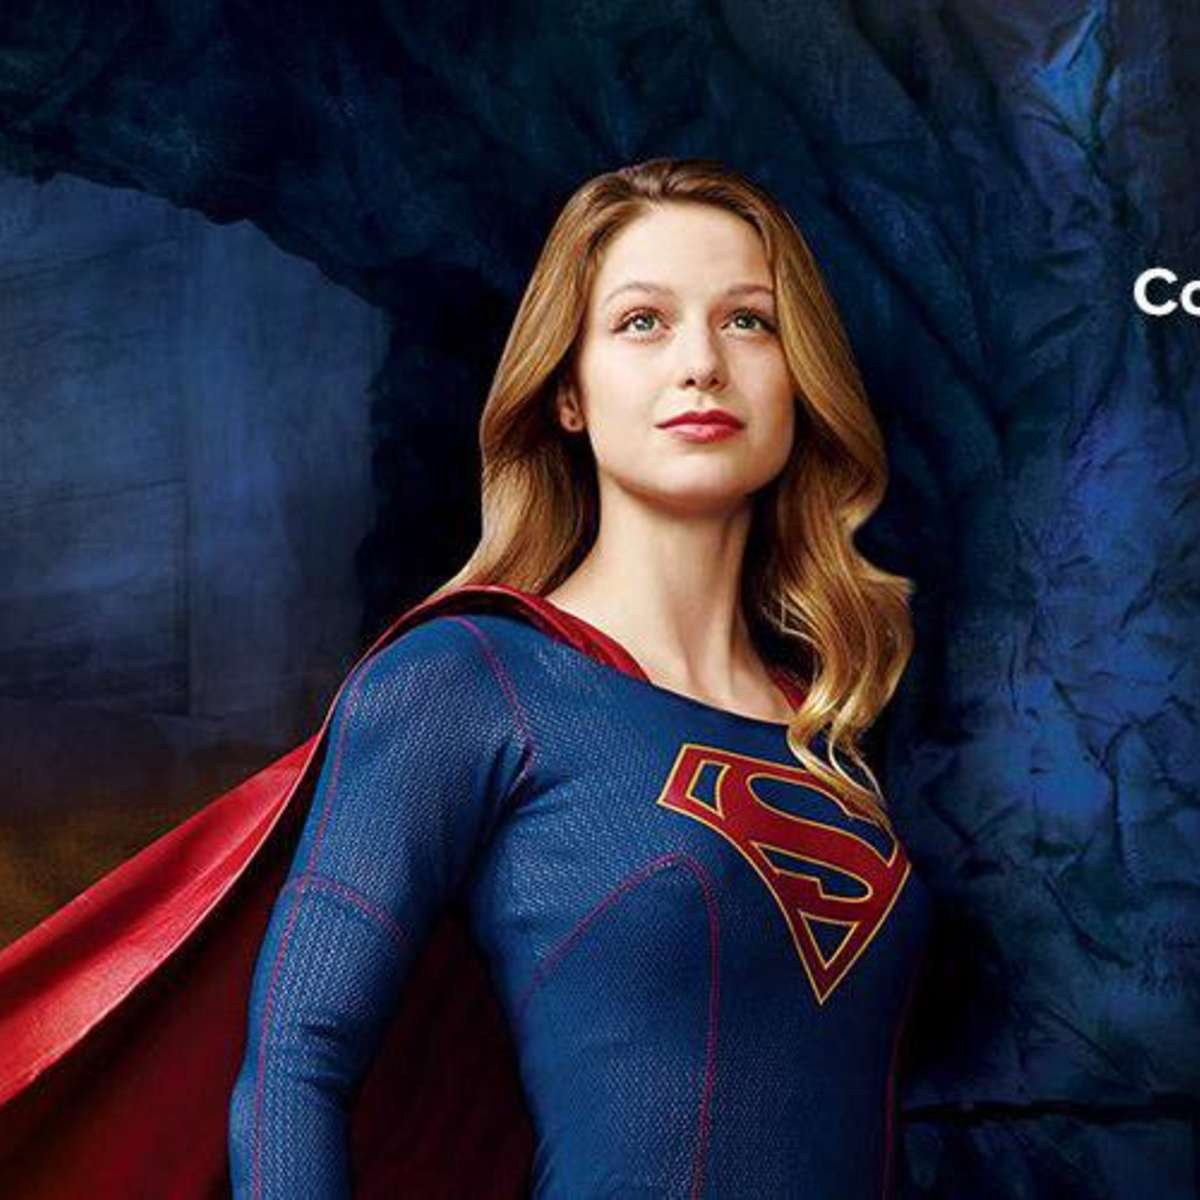 supergirl_costume_cbs.jpg